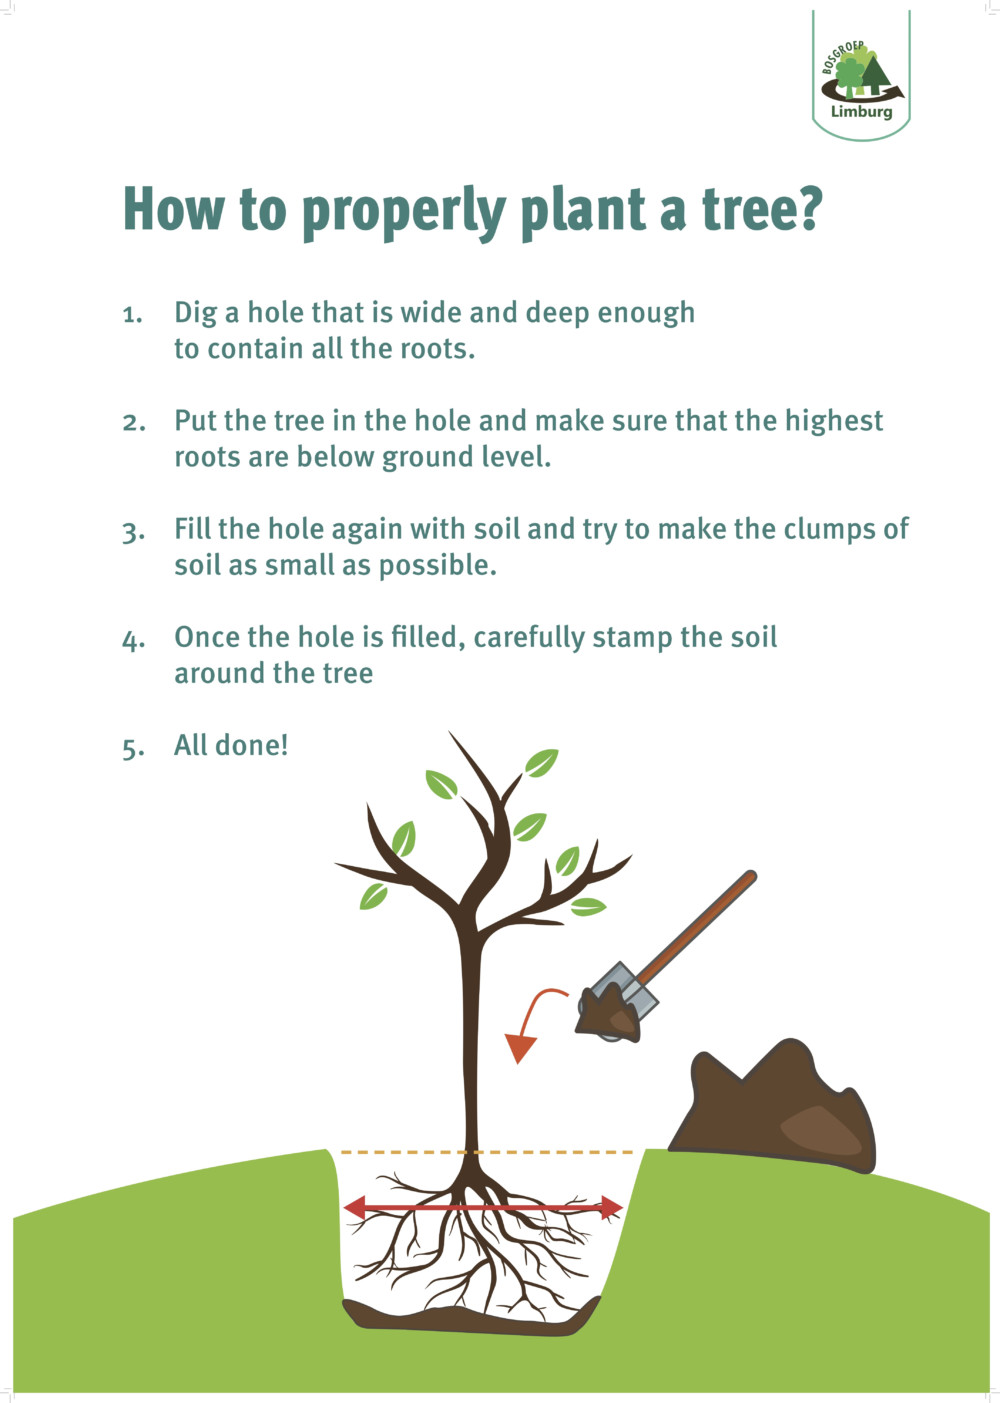 how to plant a tree bosgroep EN